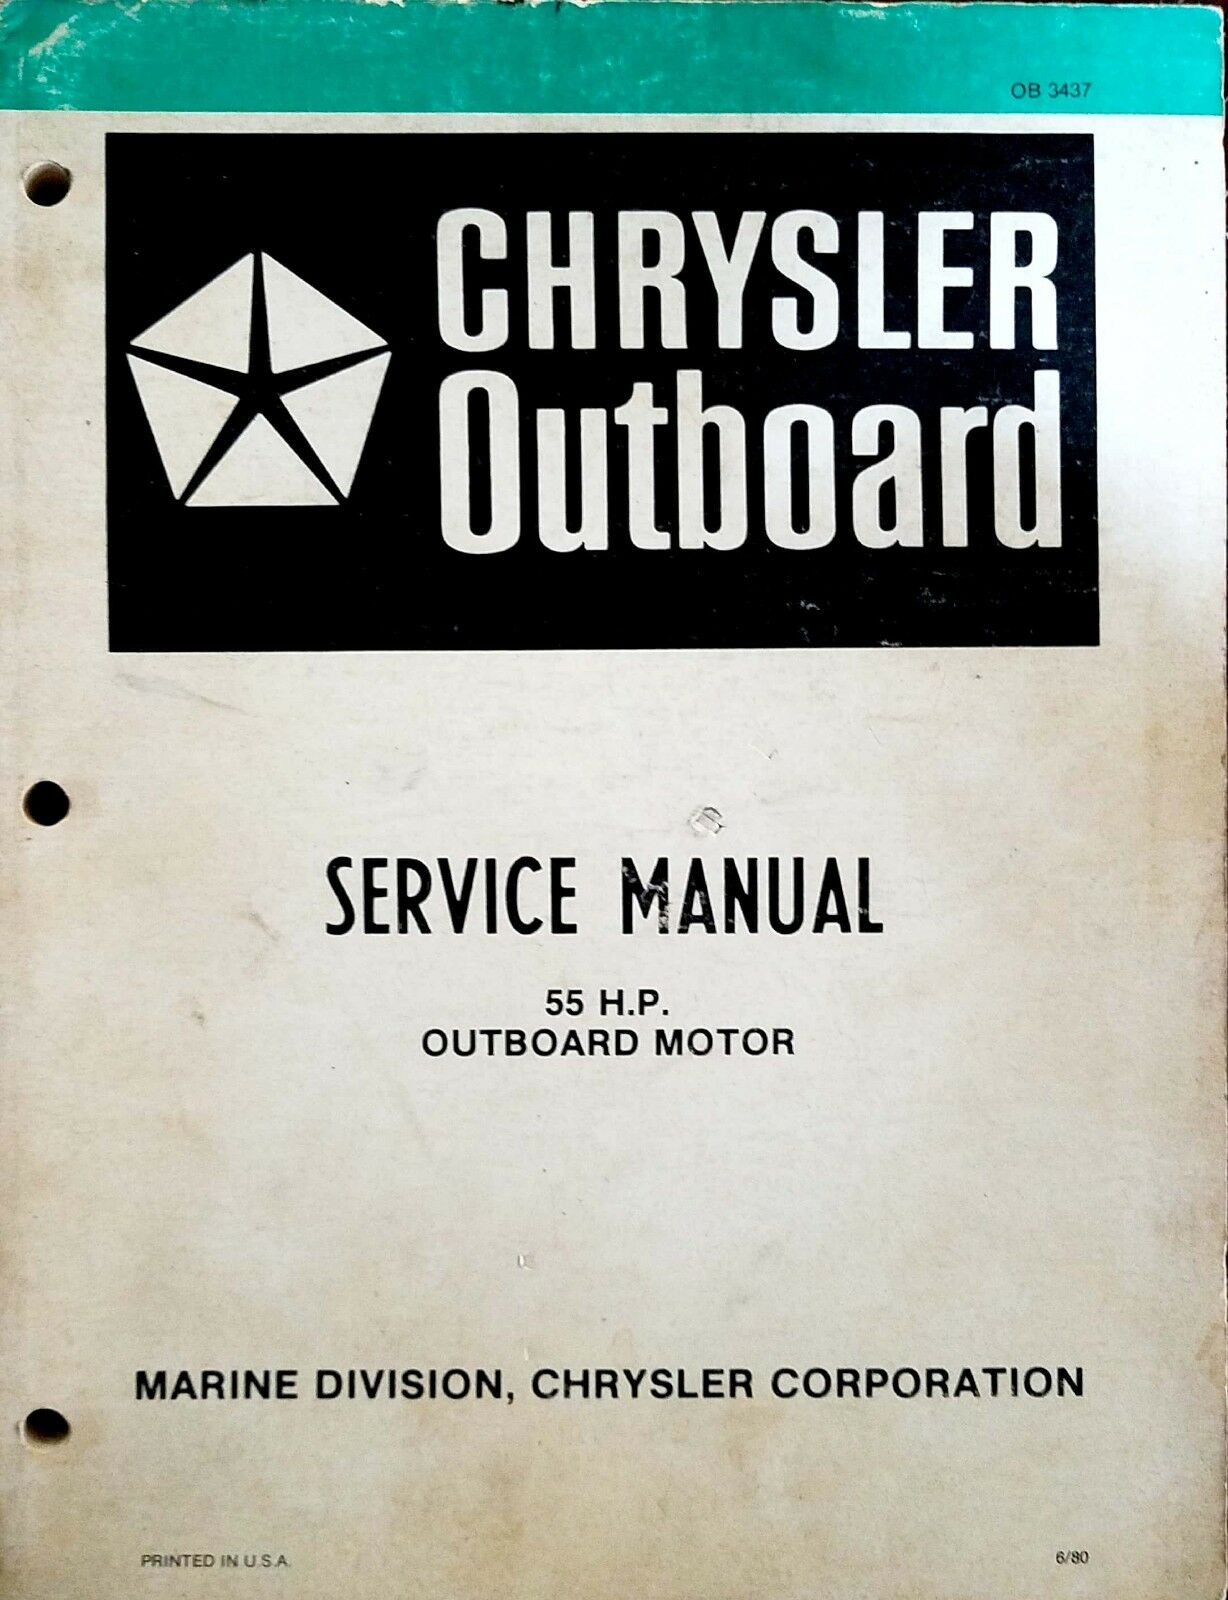 Chrysler Outboard Service Manual for 55HP